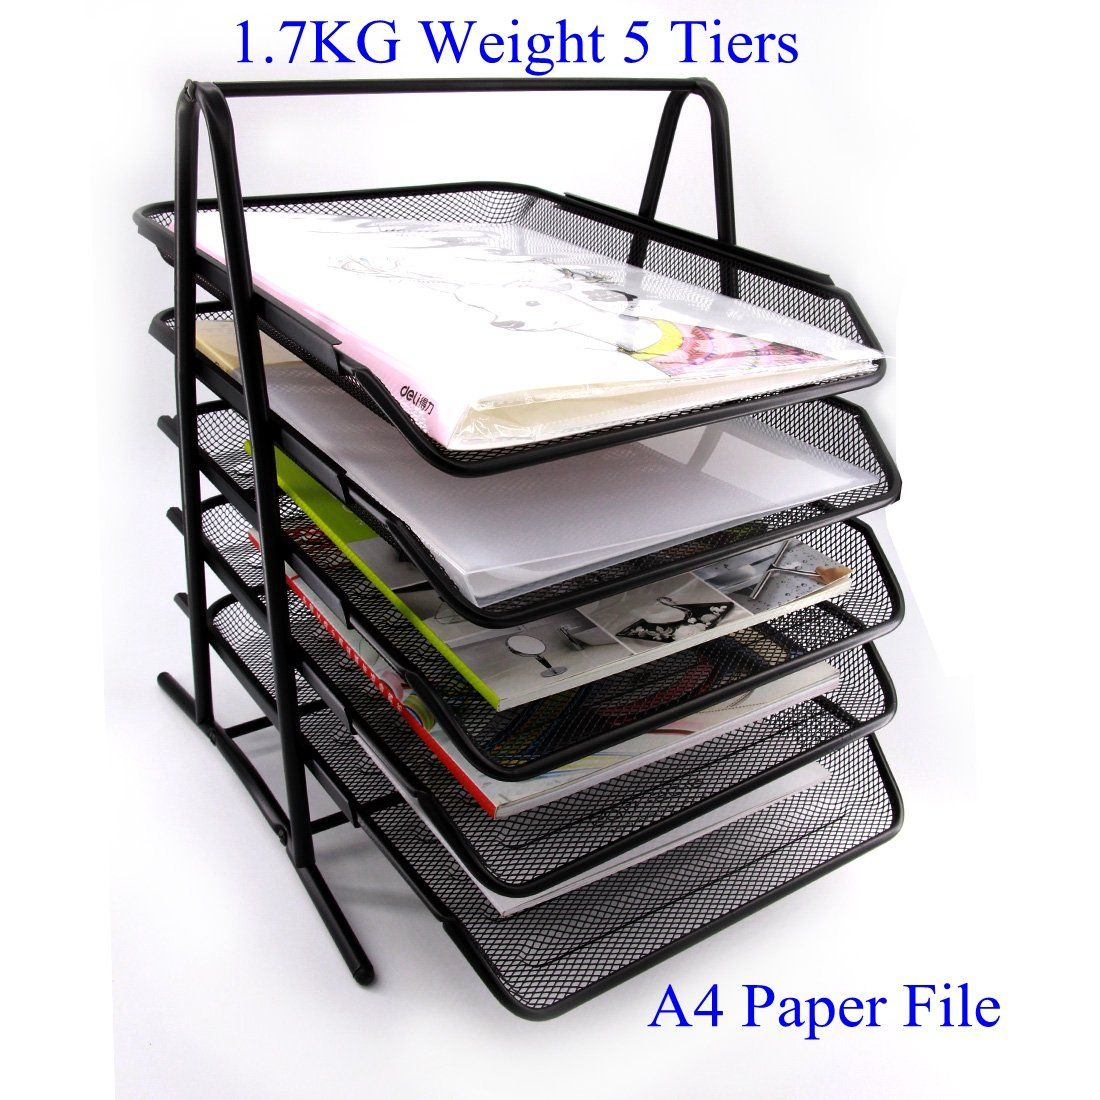 HAODE FASHION 5 Tiers Steel Mesh Document Tray, File Basket, Office ...